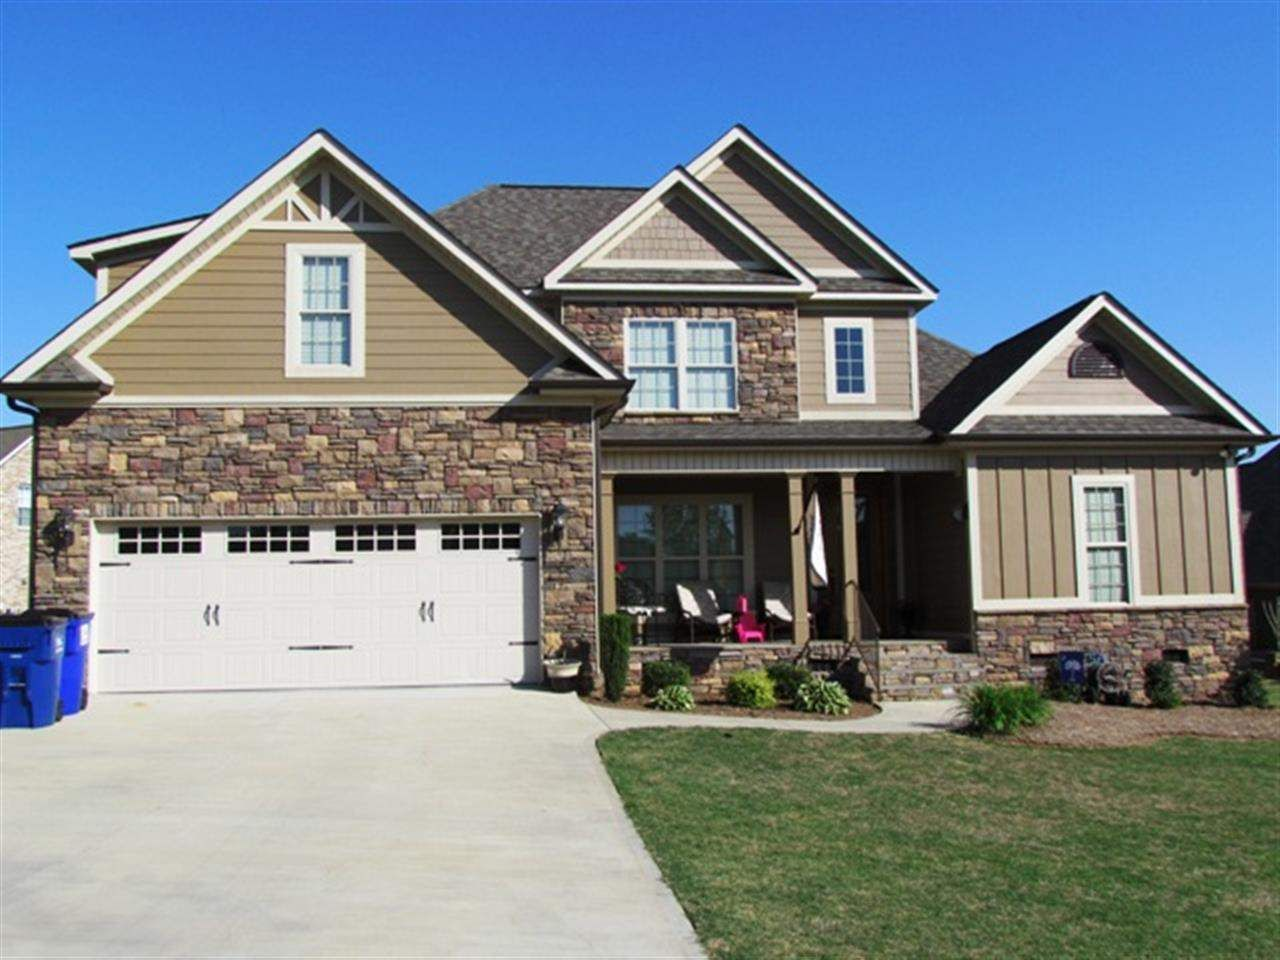 Property 608 Belle Terre Court, Inman , 29349 has 3 bedrooms, 2.0 bathrooms with 2200 square feet.